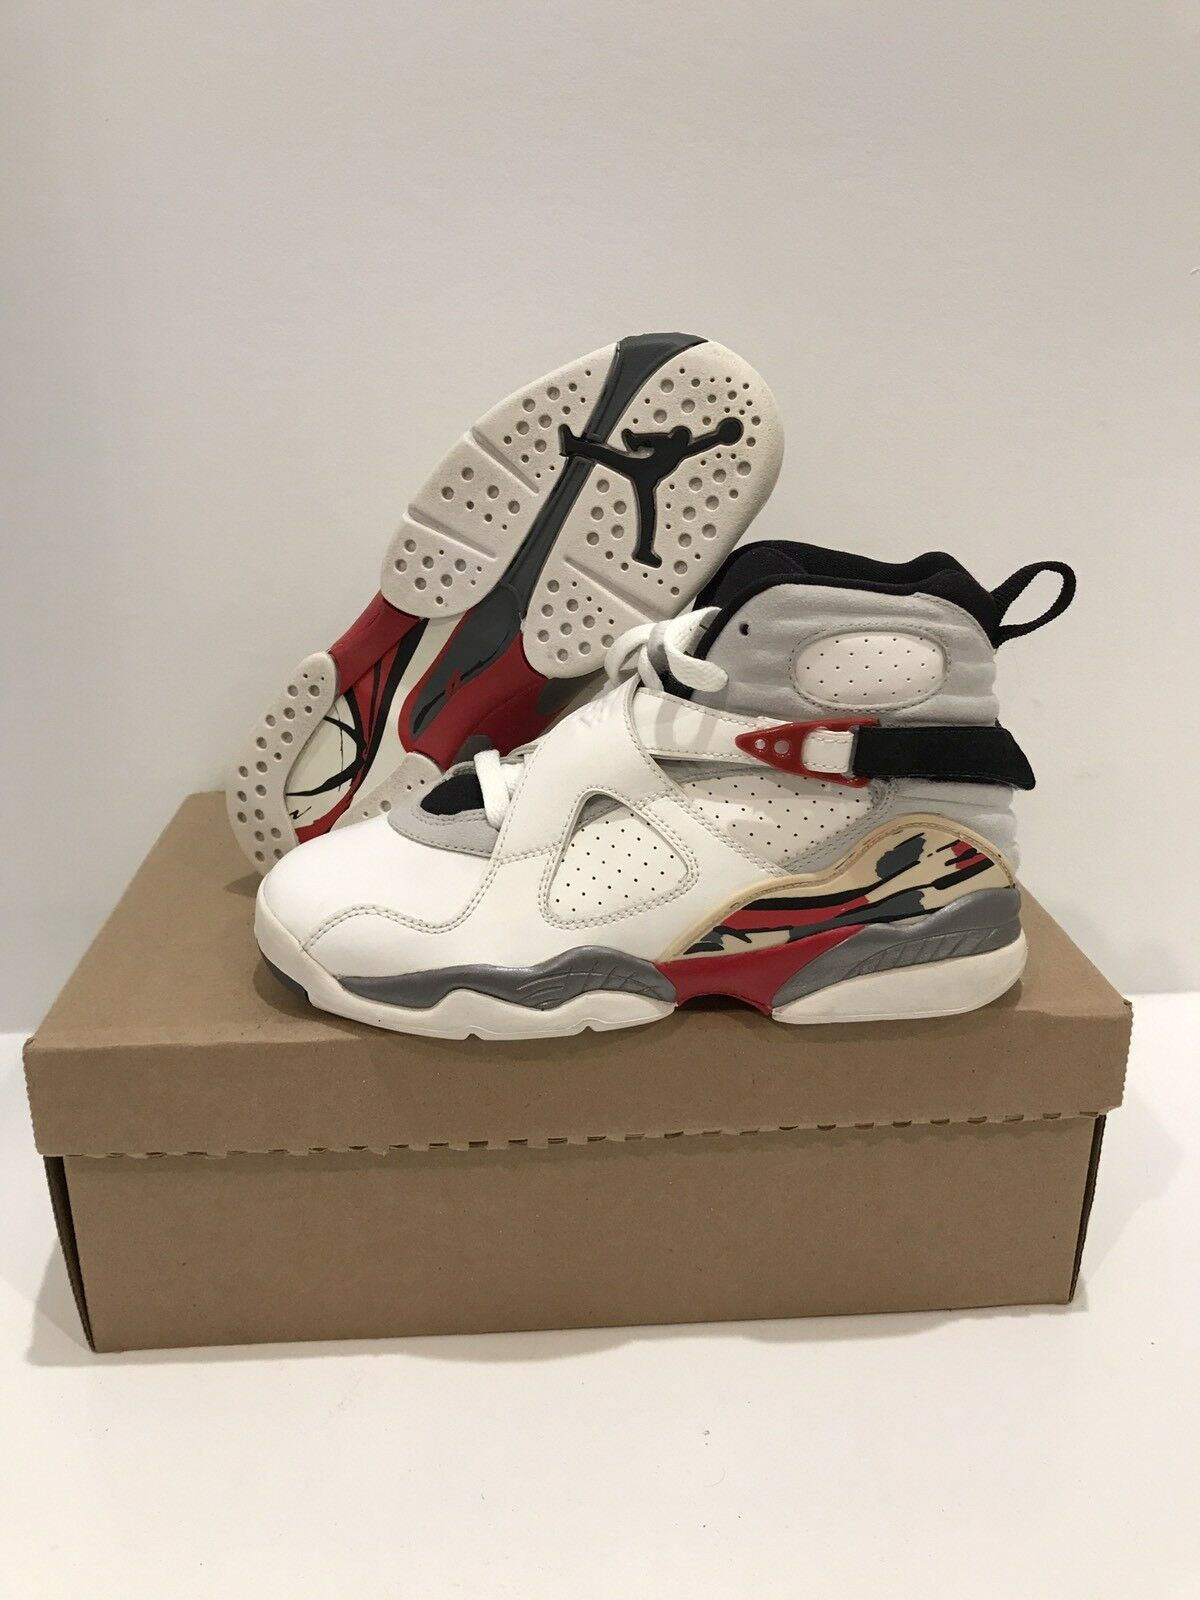 Air Jordan Retro 8 CDP Comfortable New shoes for men and women, limited time discount